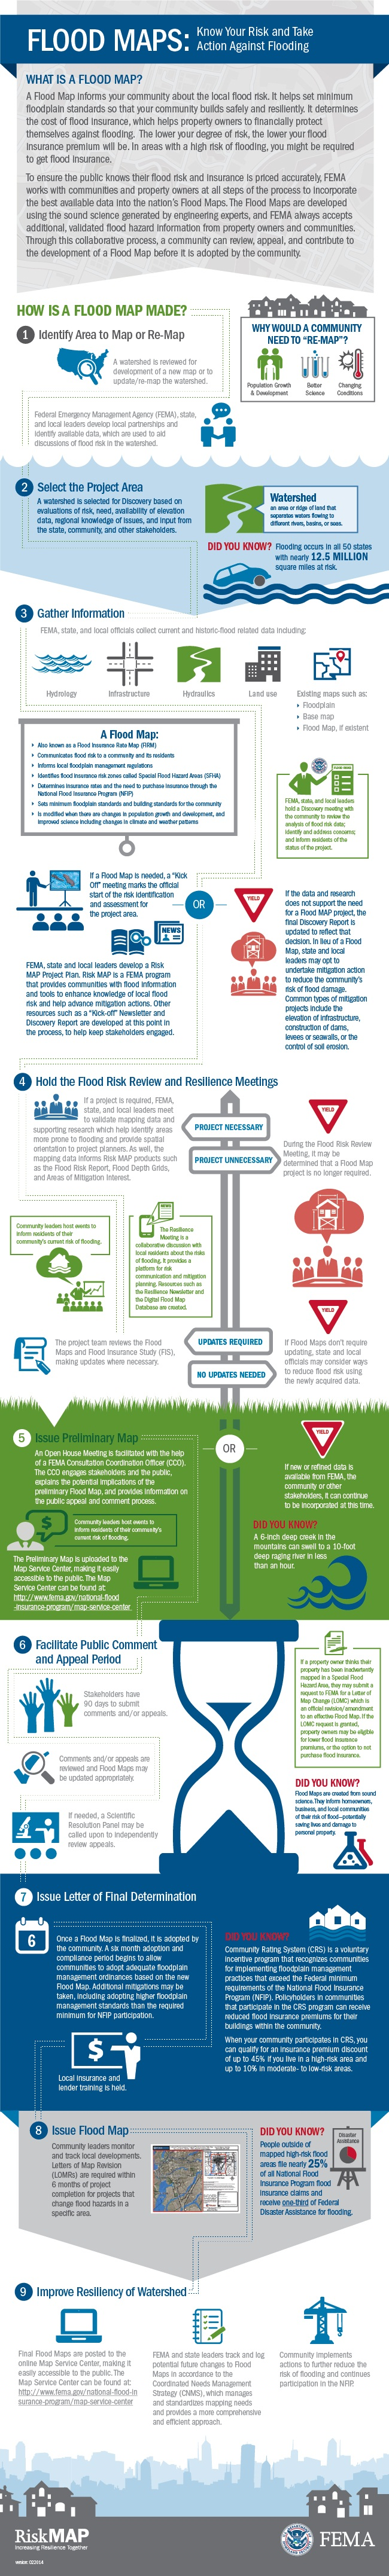 FEMA Infographic - Flood Mapping Process